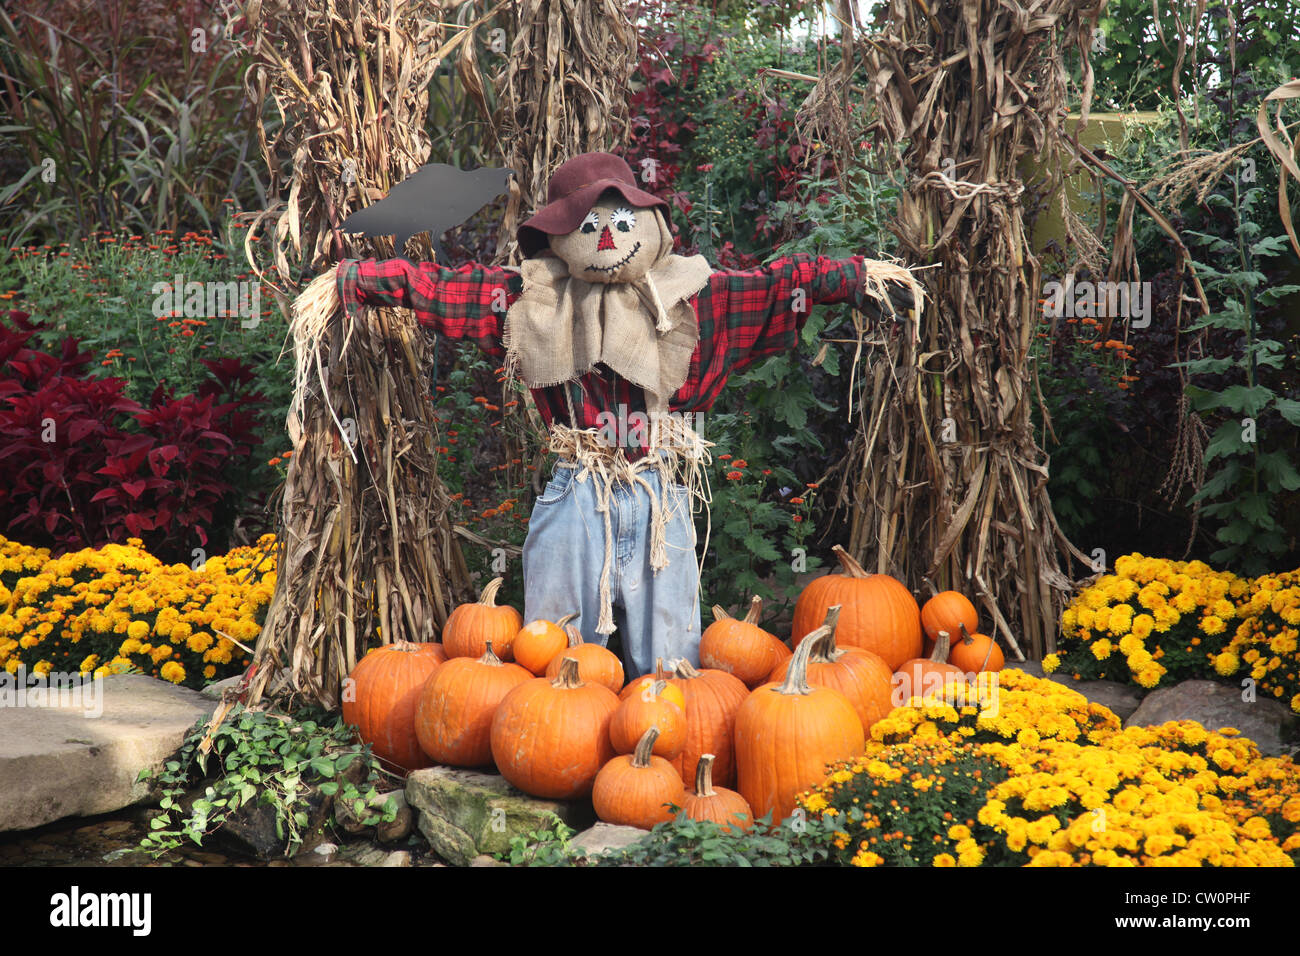 Halloween decoration with scarecrow and pumpkins - Stock Image